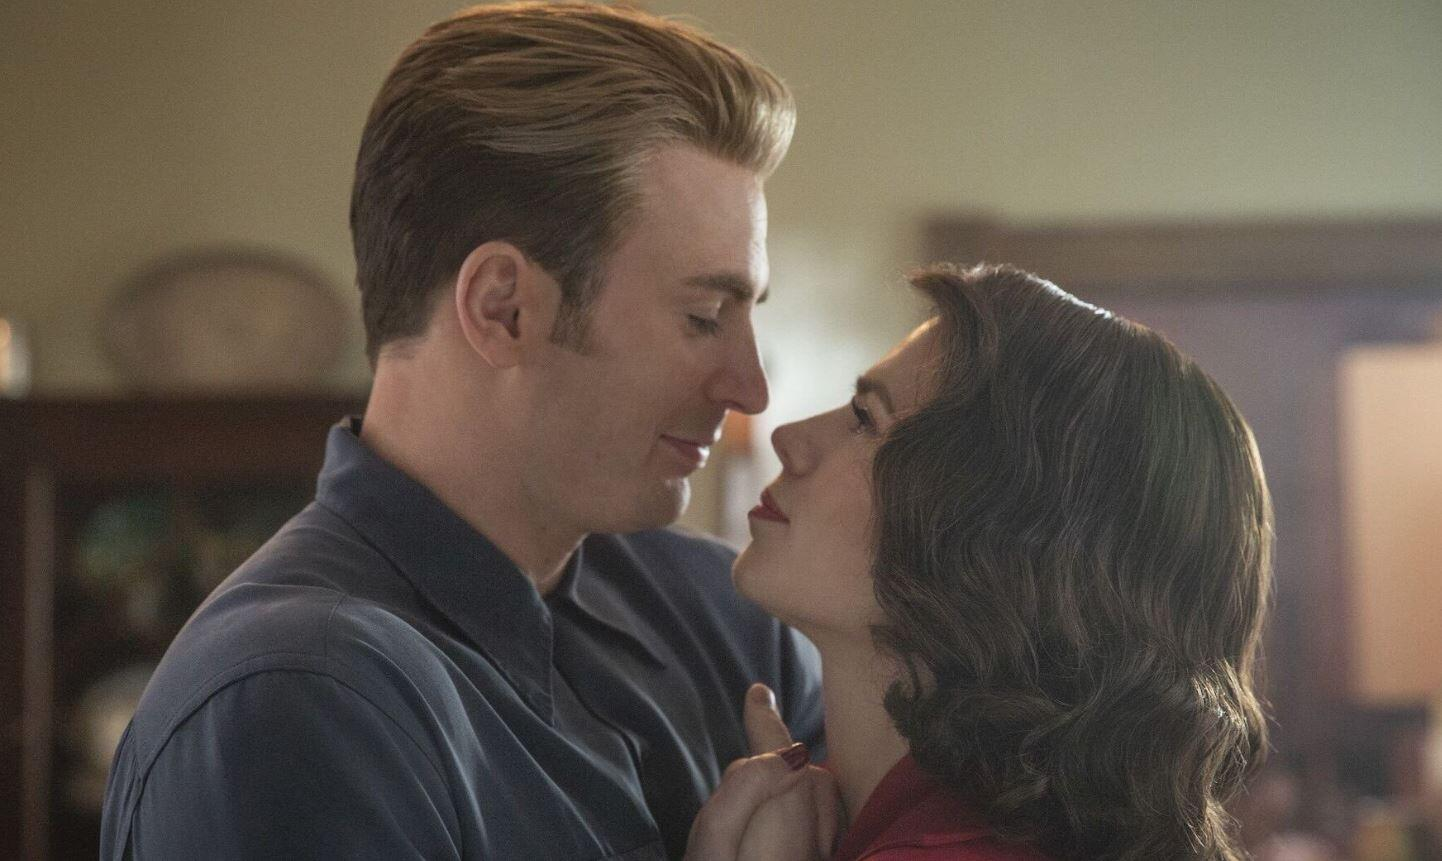 Steve and Peggy, the iconic romantically troubled MCU couple